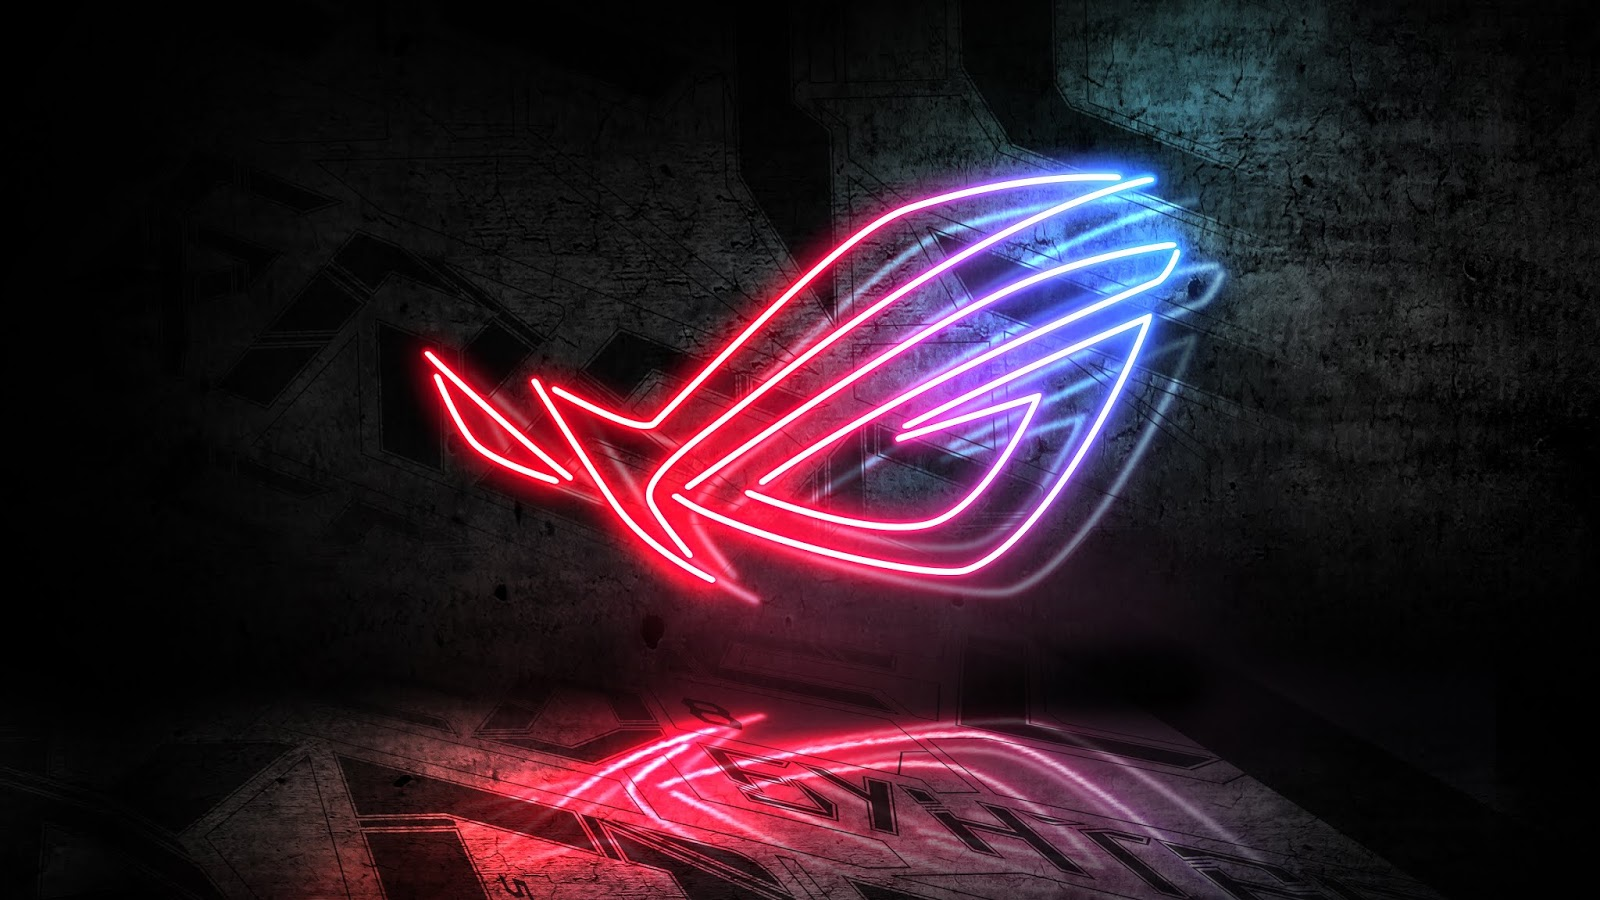 Asus, Neon Sign, Republic of Gamers, Neon Light, 4K, Technology